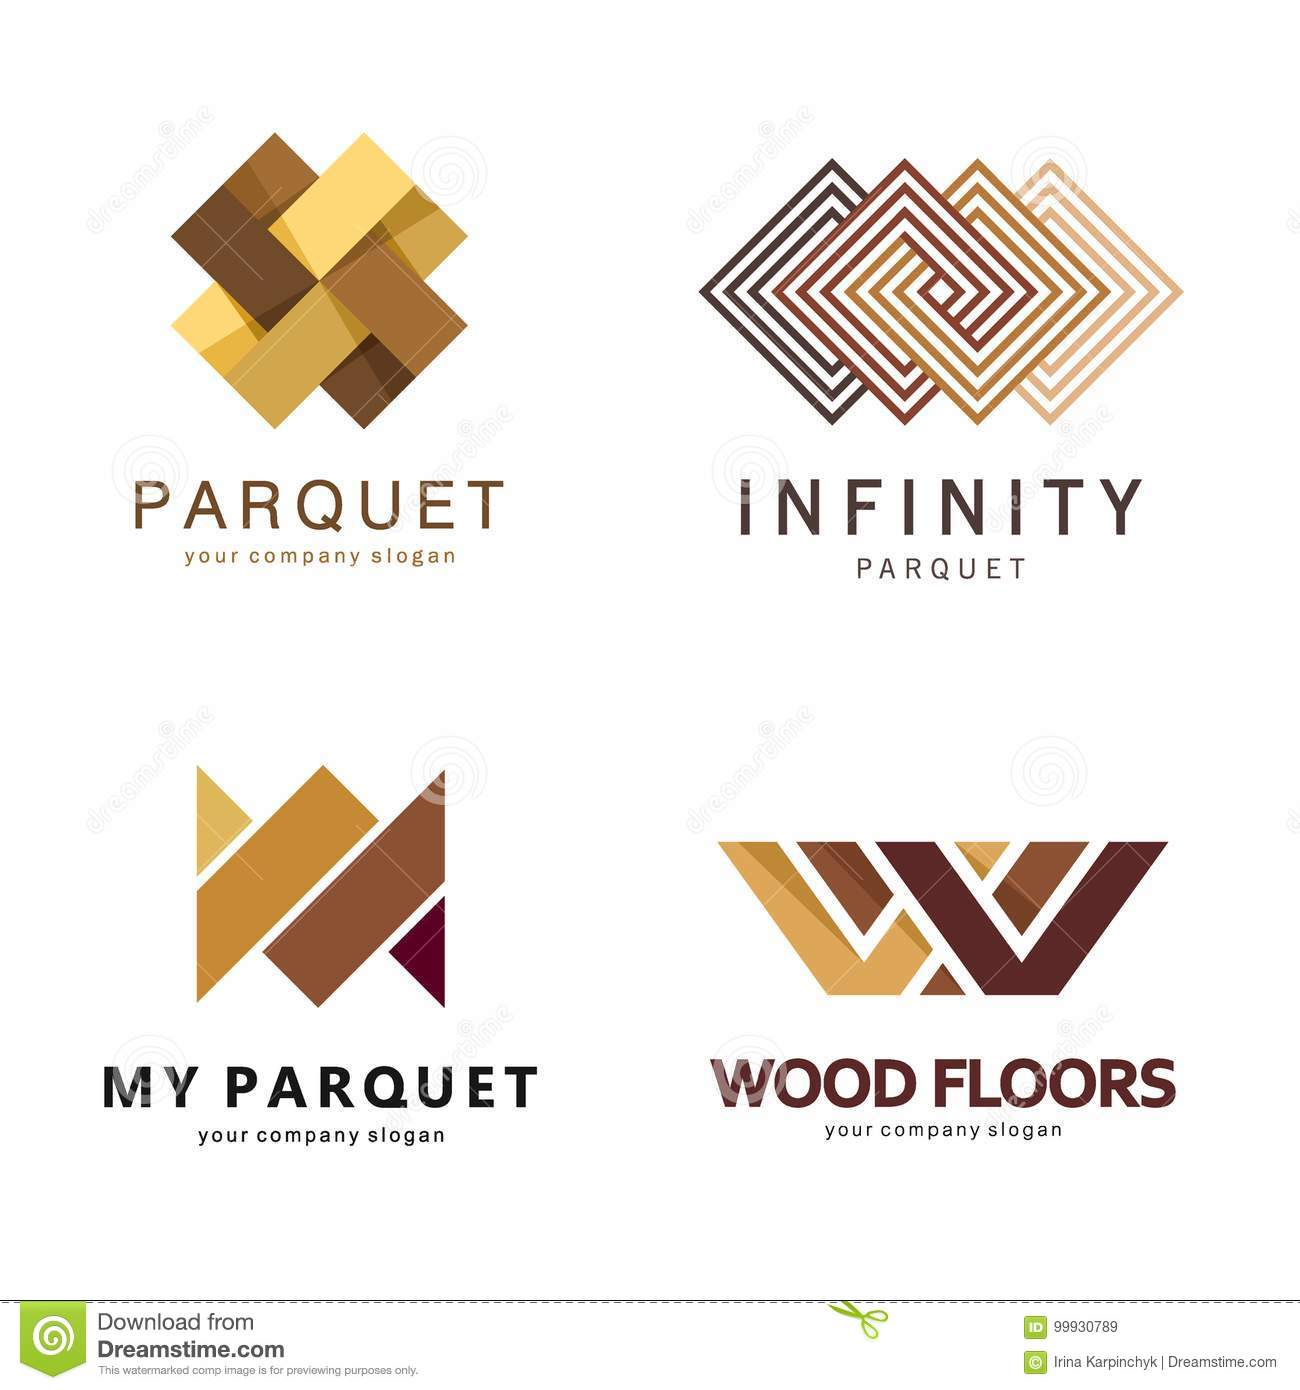 floor and decor logo vector abstract logo template logo design for parquet laminate flooring tiles stock vector 2435